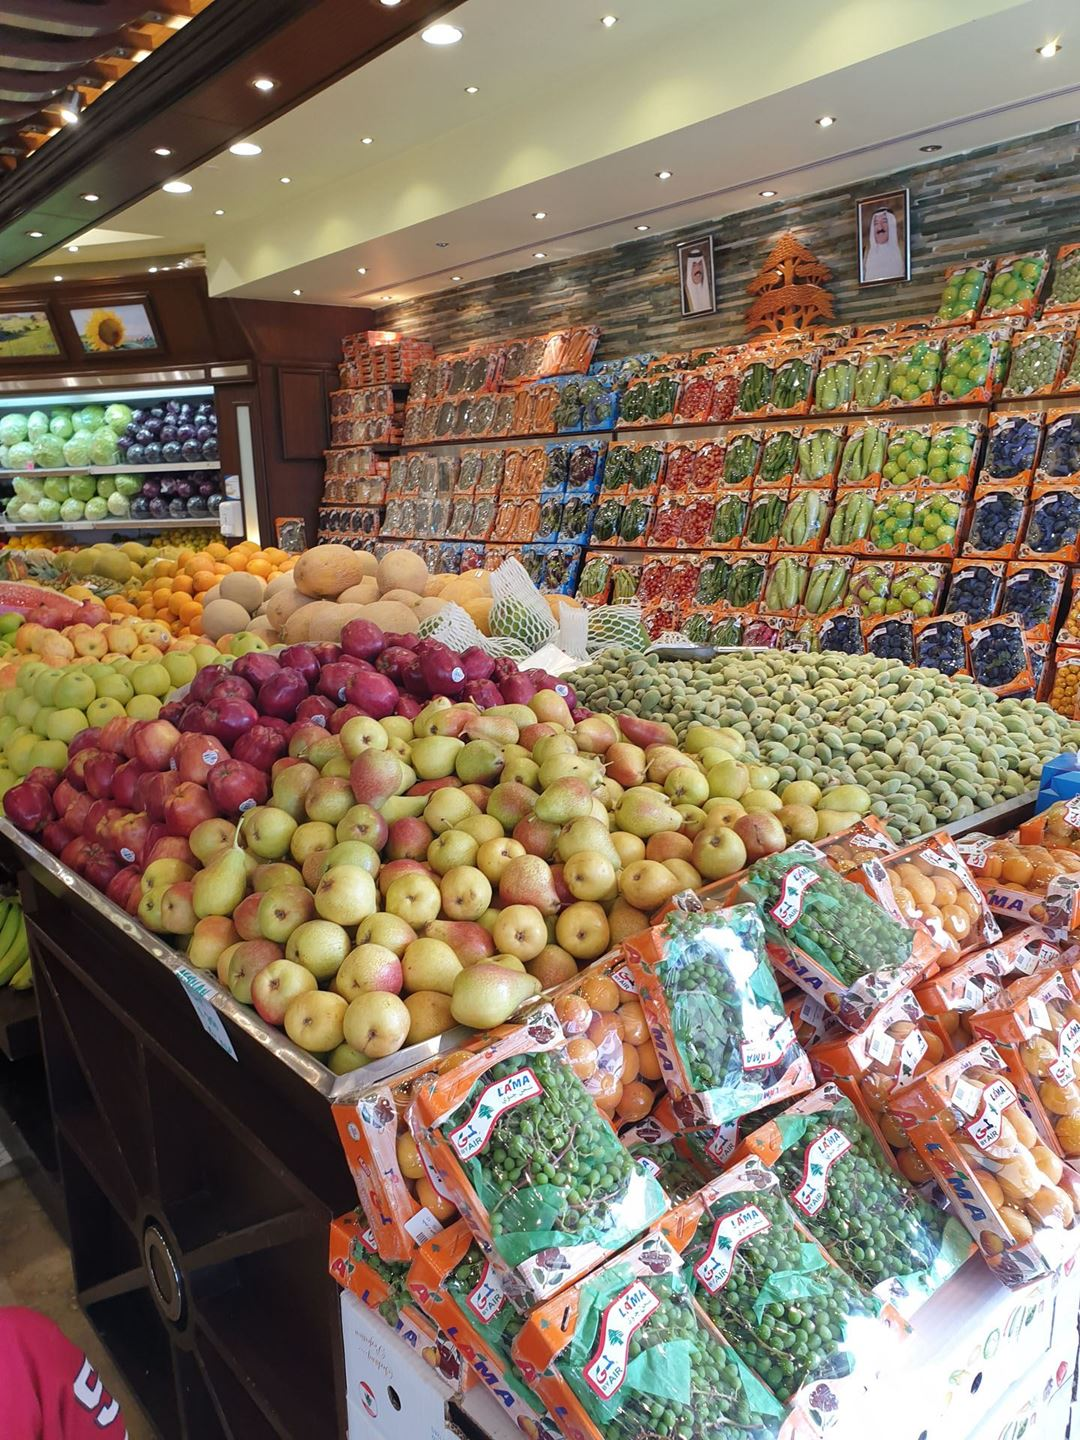 Where to find Lebanese Products in Kuwait?